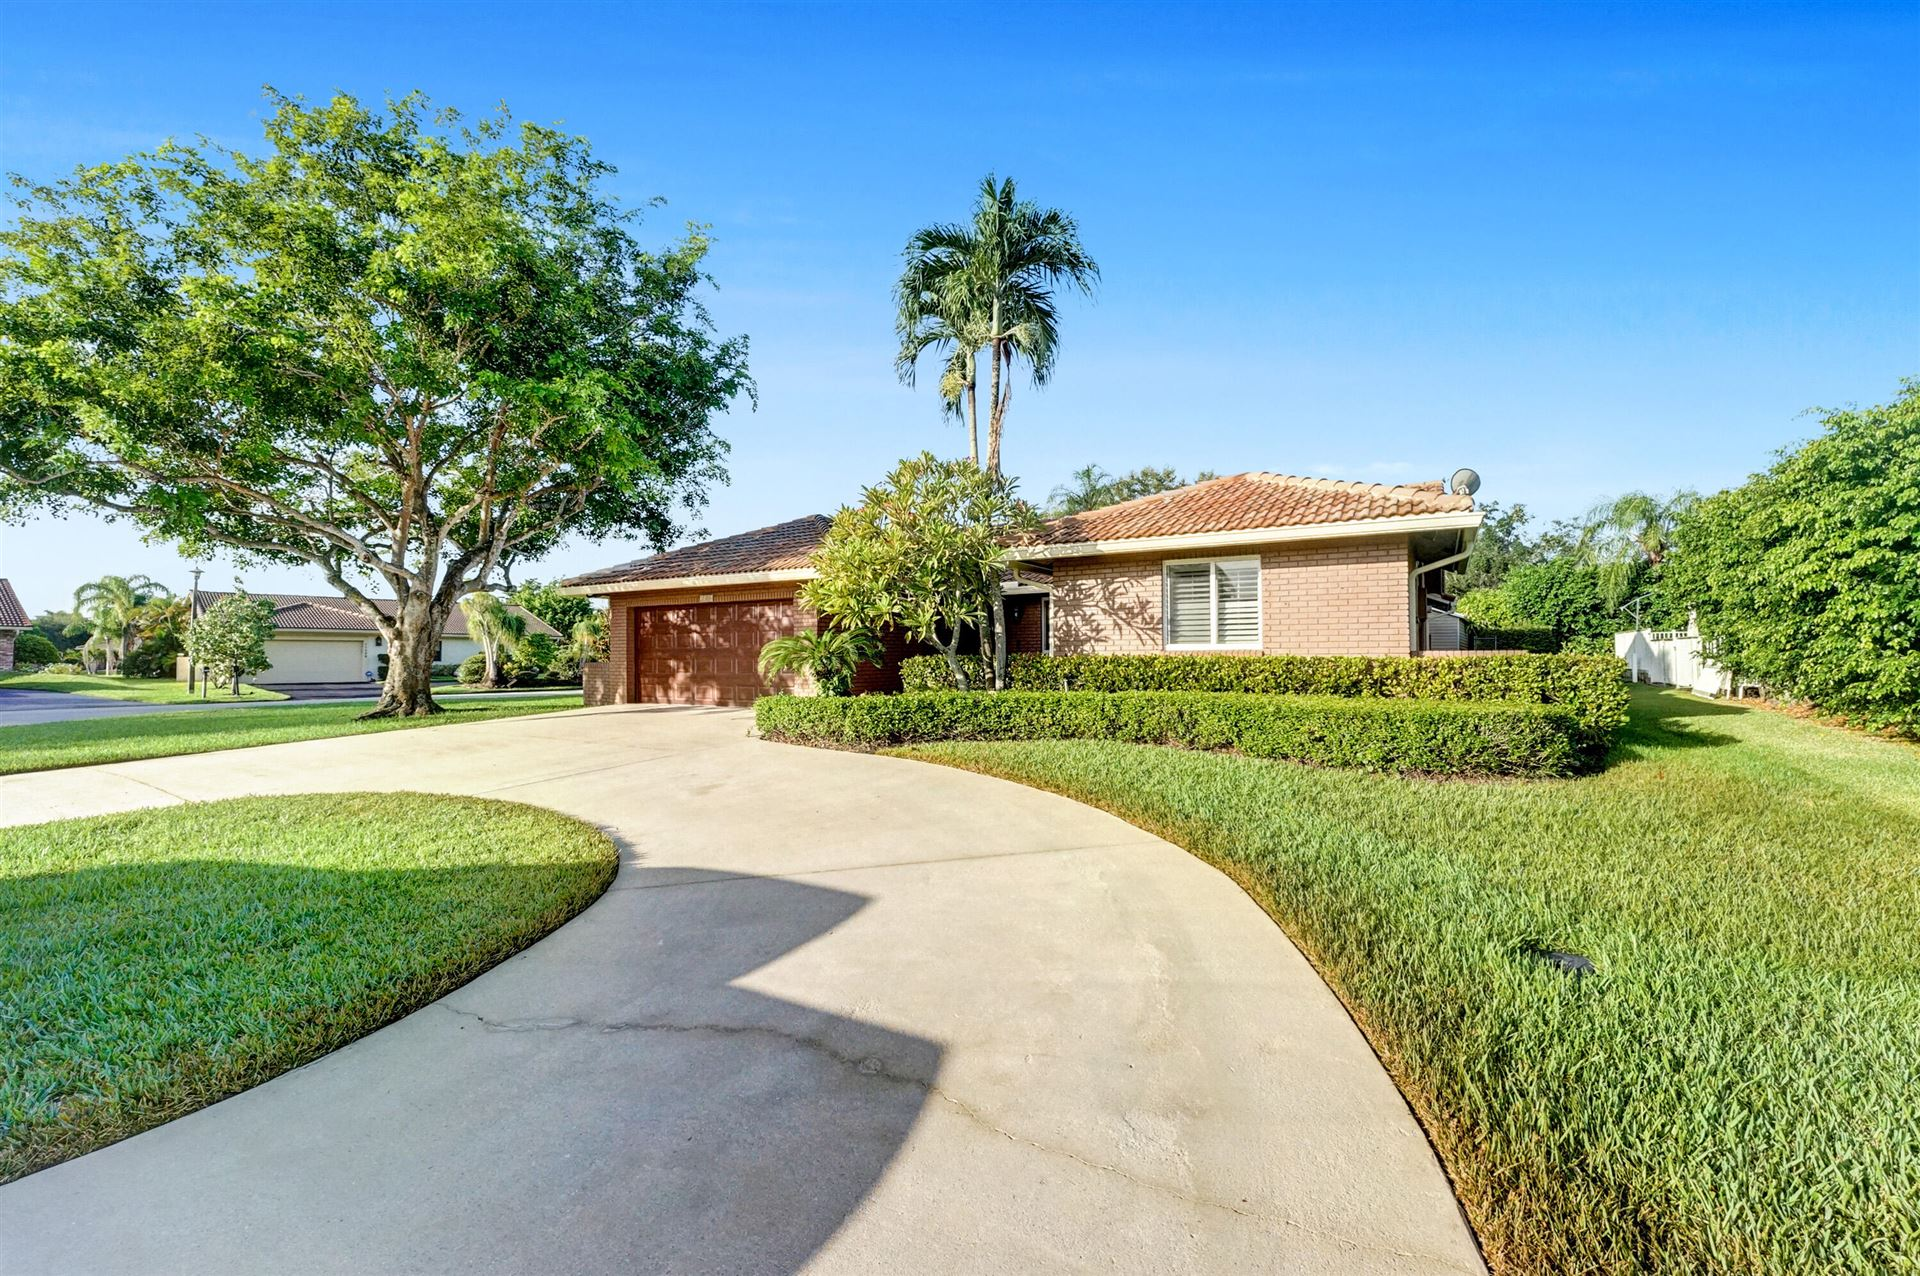 2106 NW 116th Terrace, Coral Springs, FL 33071 - MLS#: RX-10745344